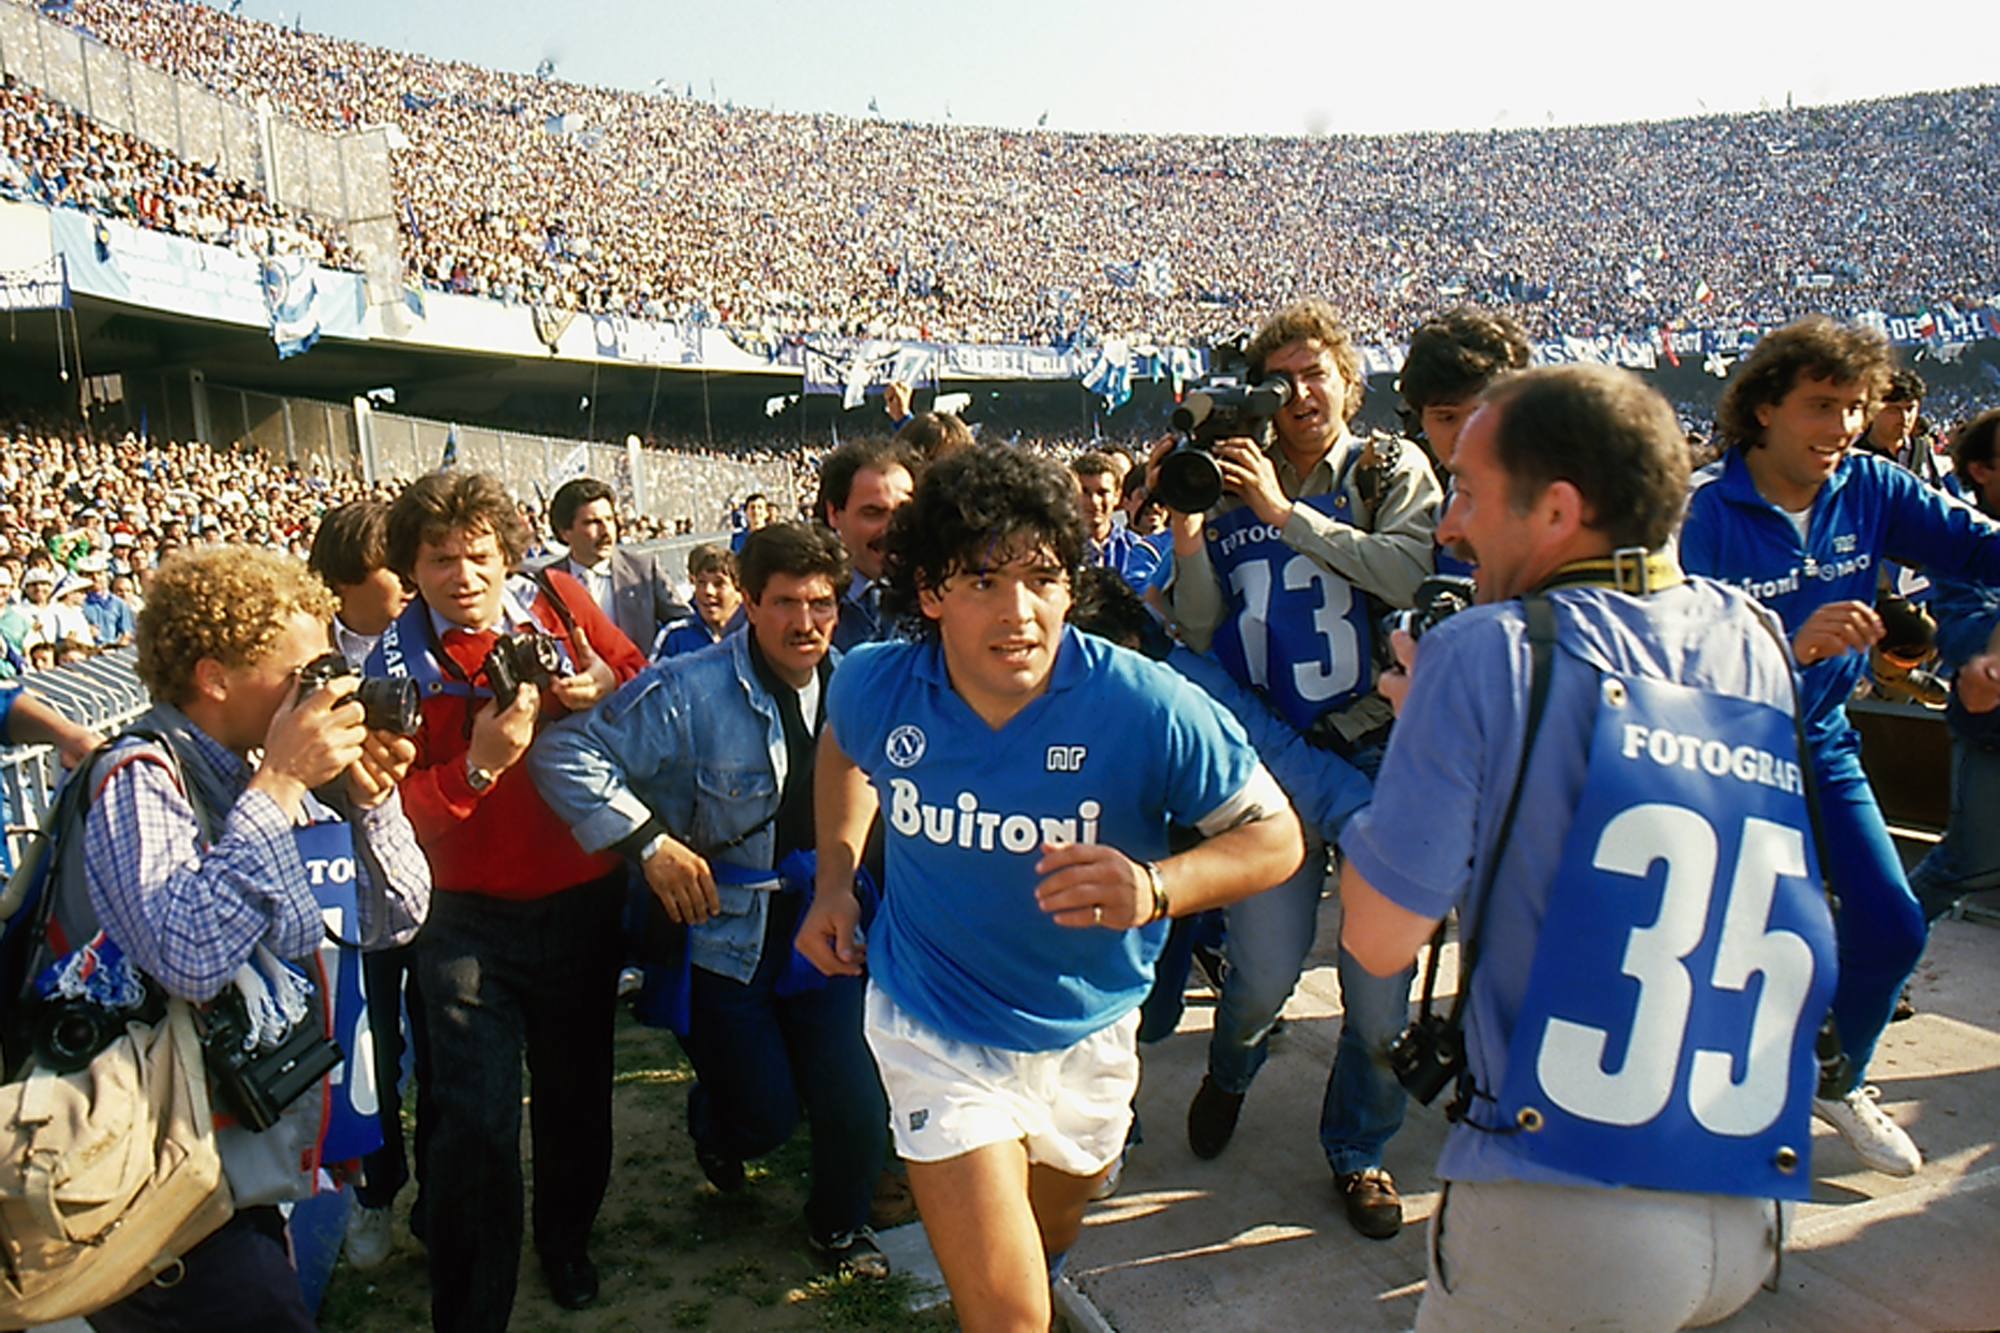 111_DM.running.onto.the.pitch.at.San.Paolo.stadium by Alfredo Capozzi.jpg